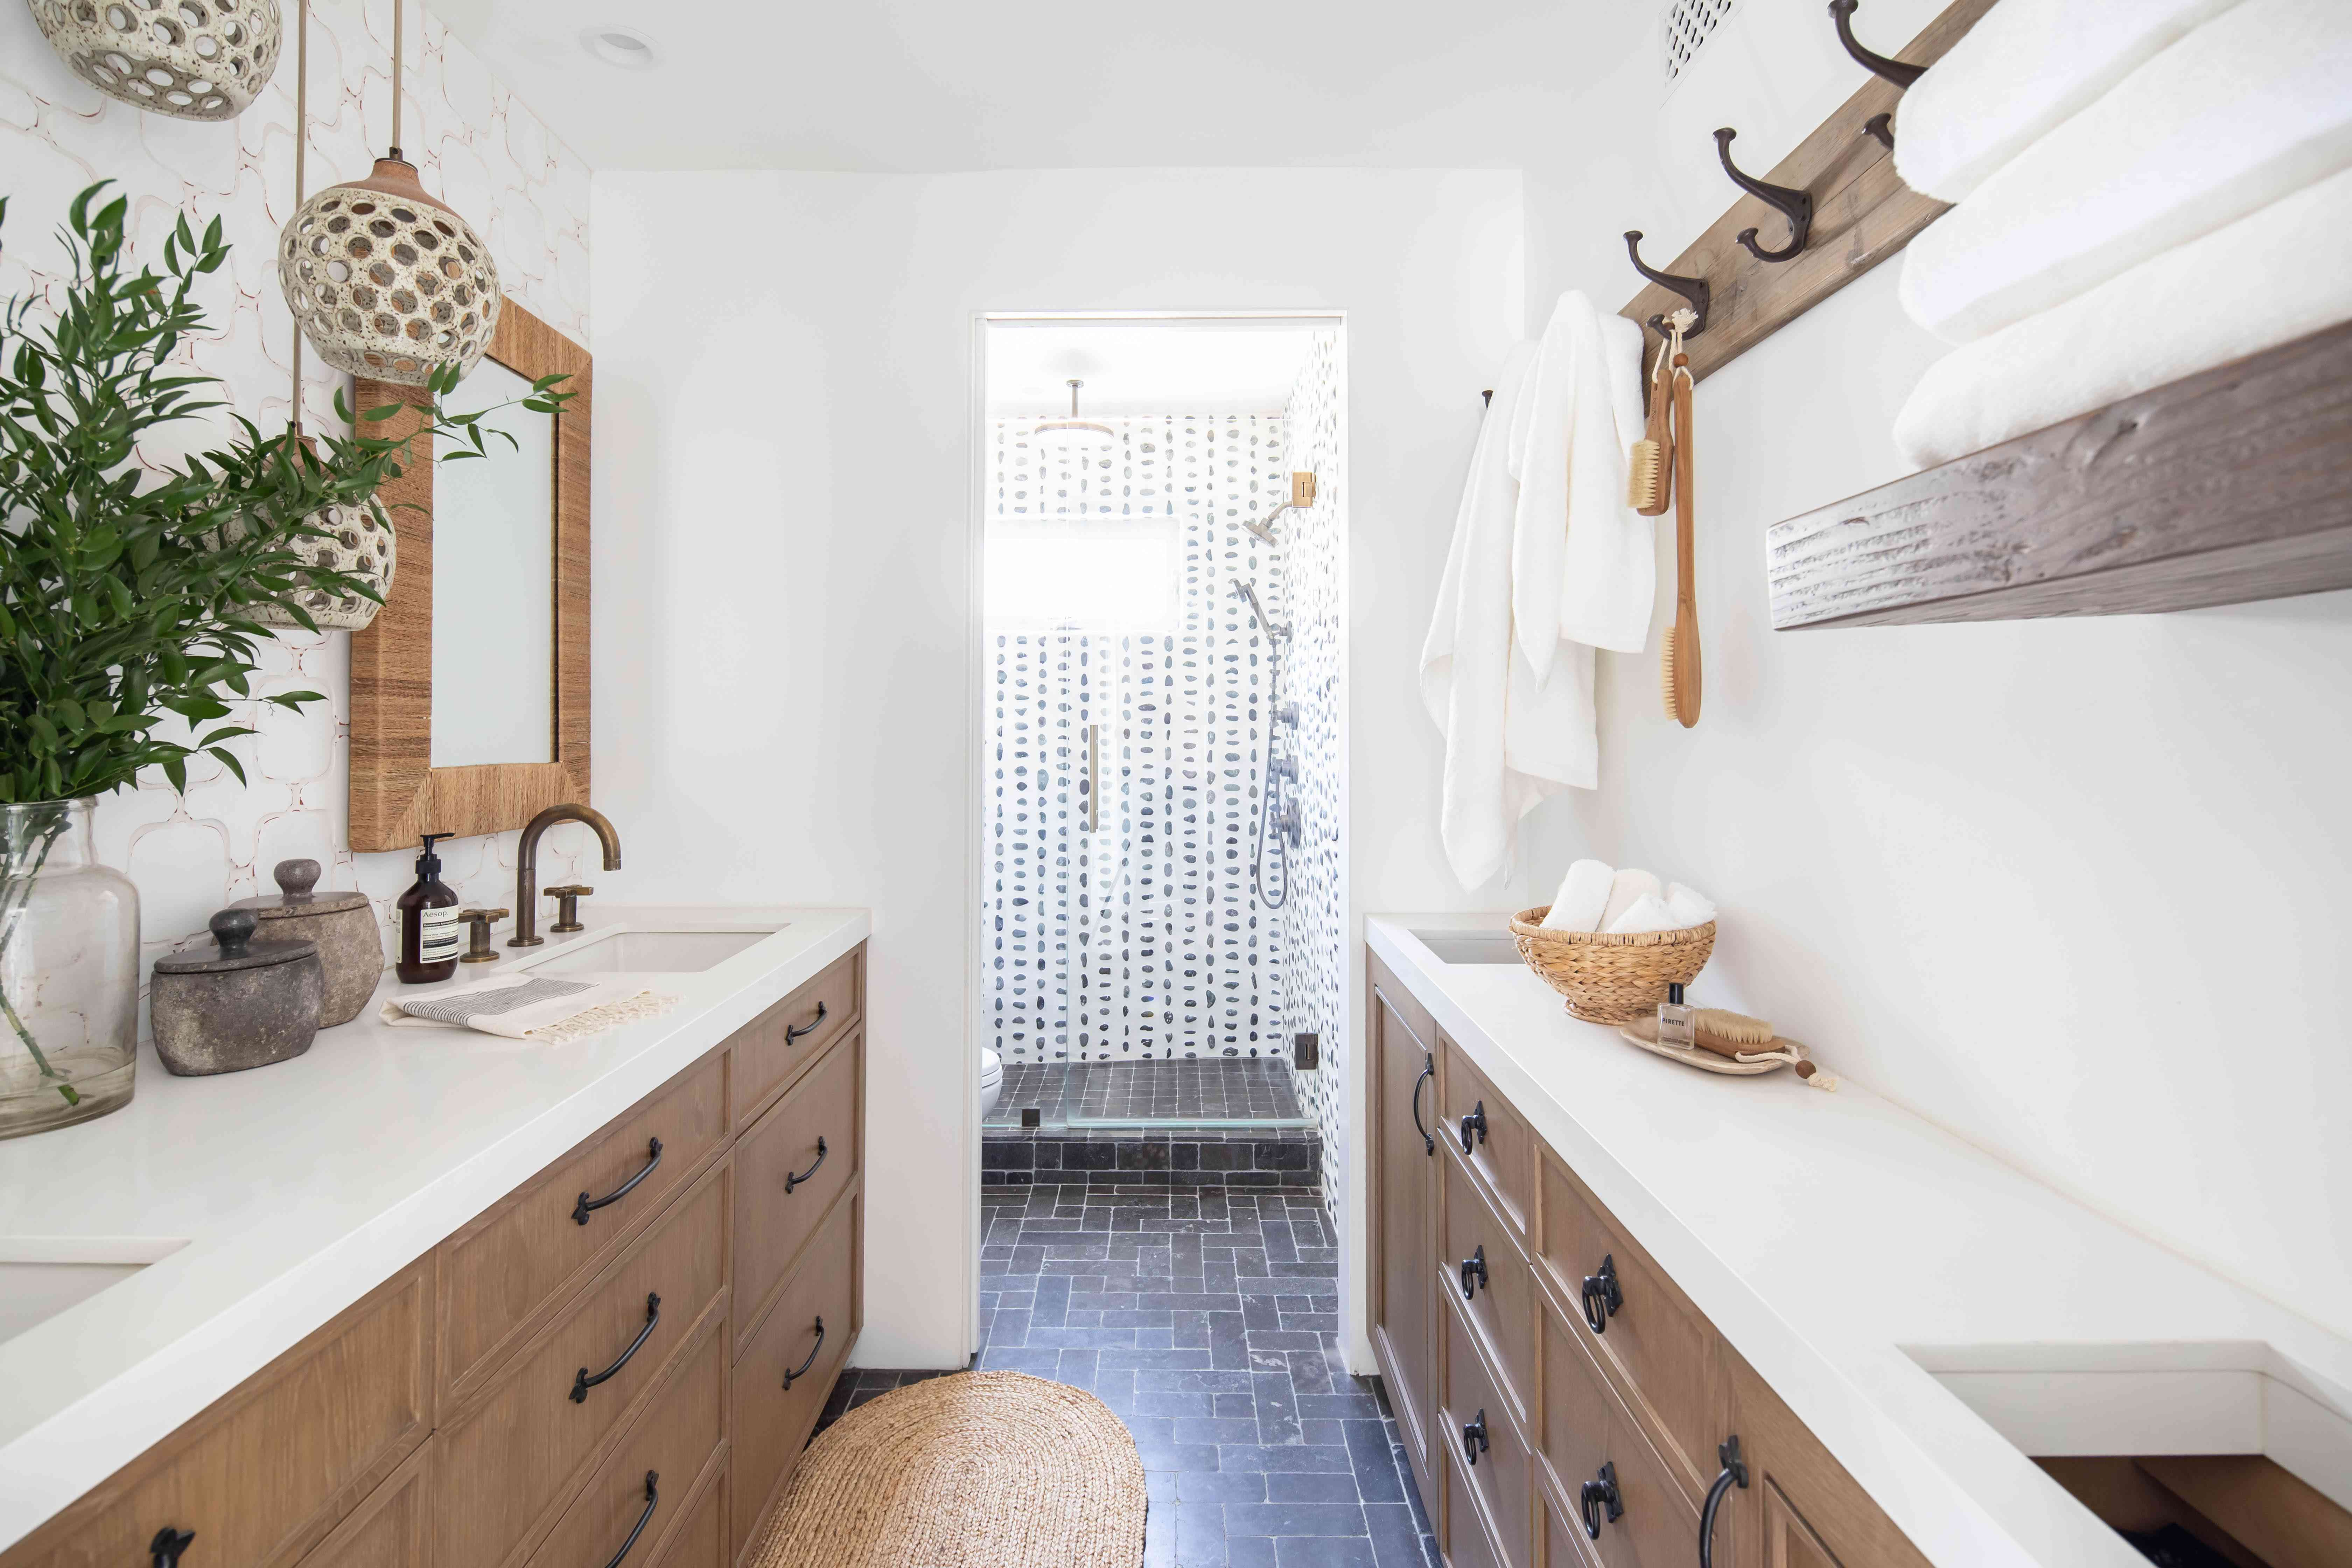 Primary bathroom with Moroccan style shower.